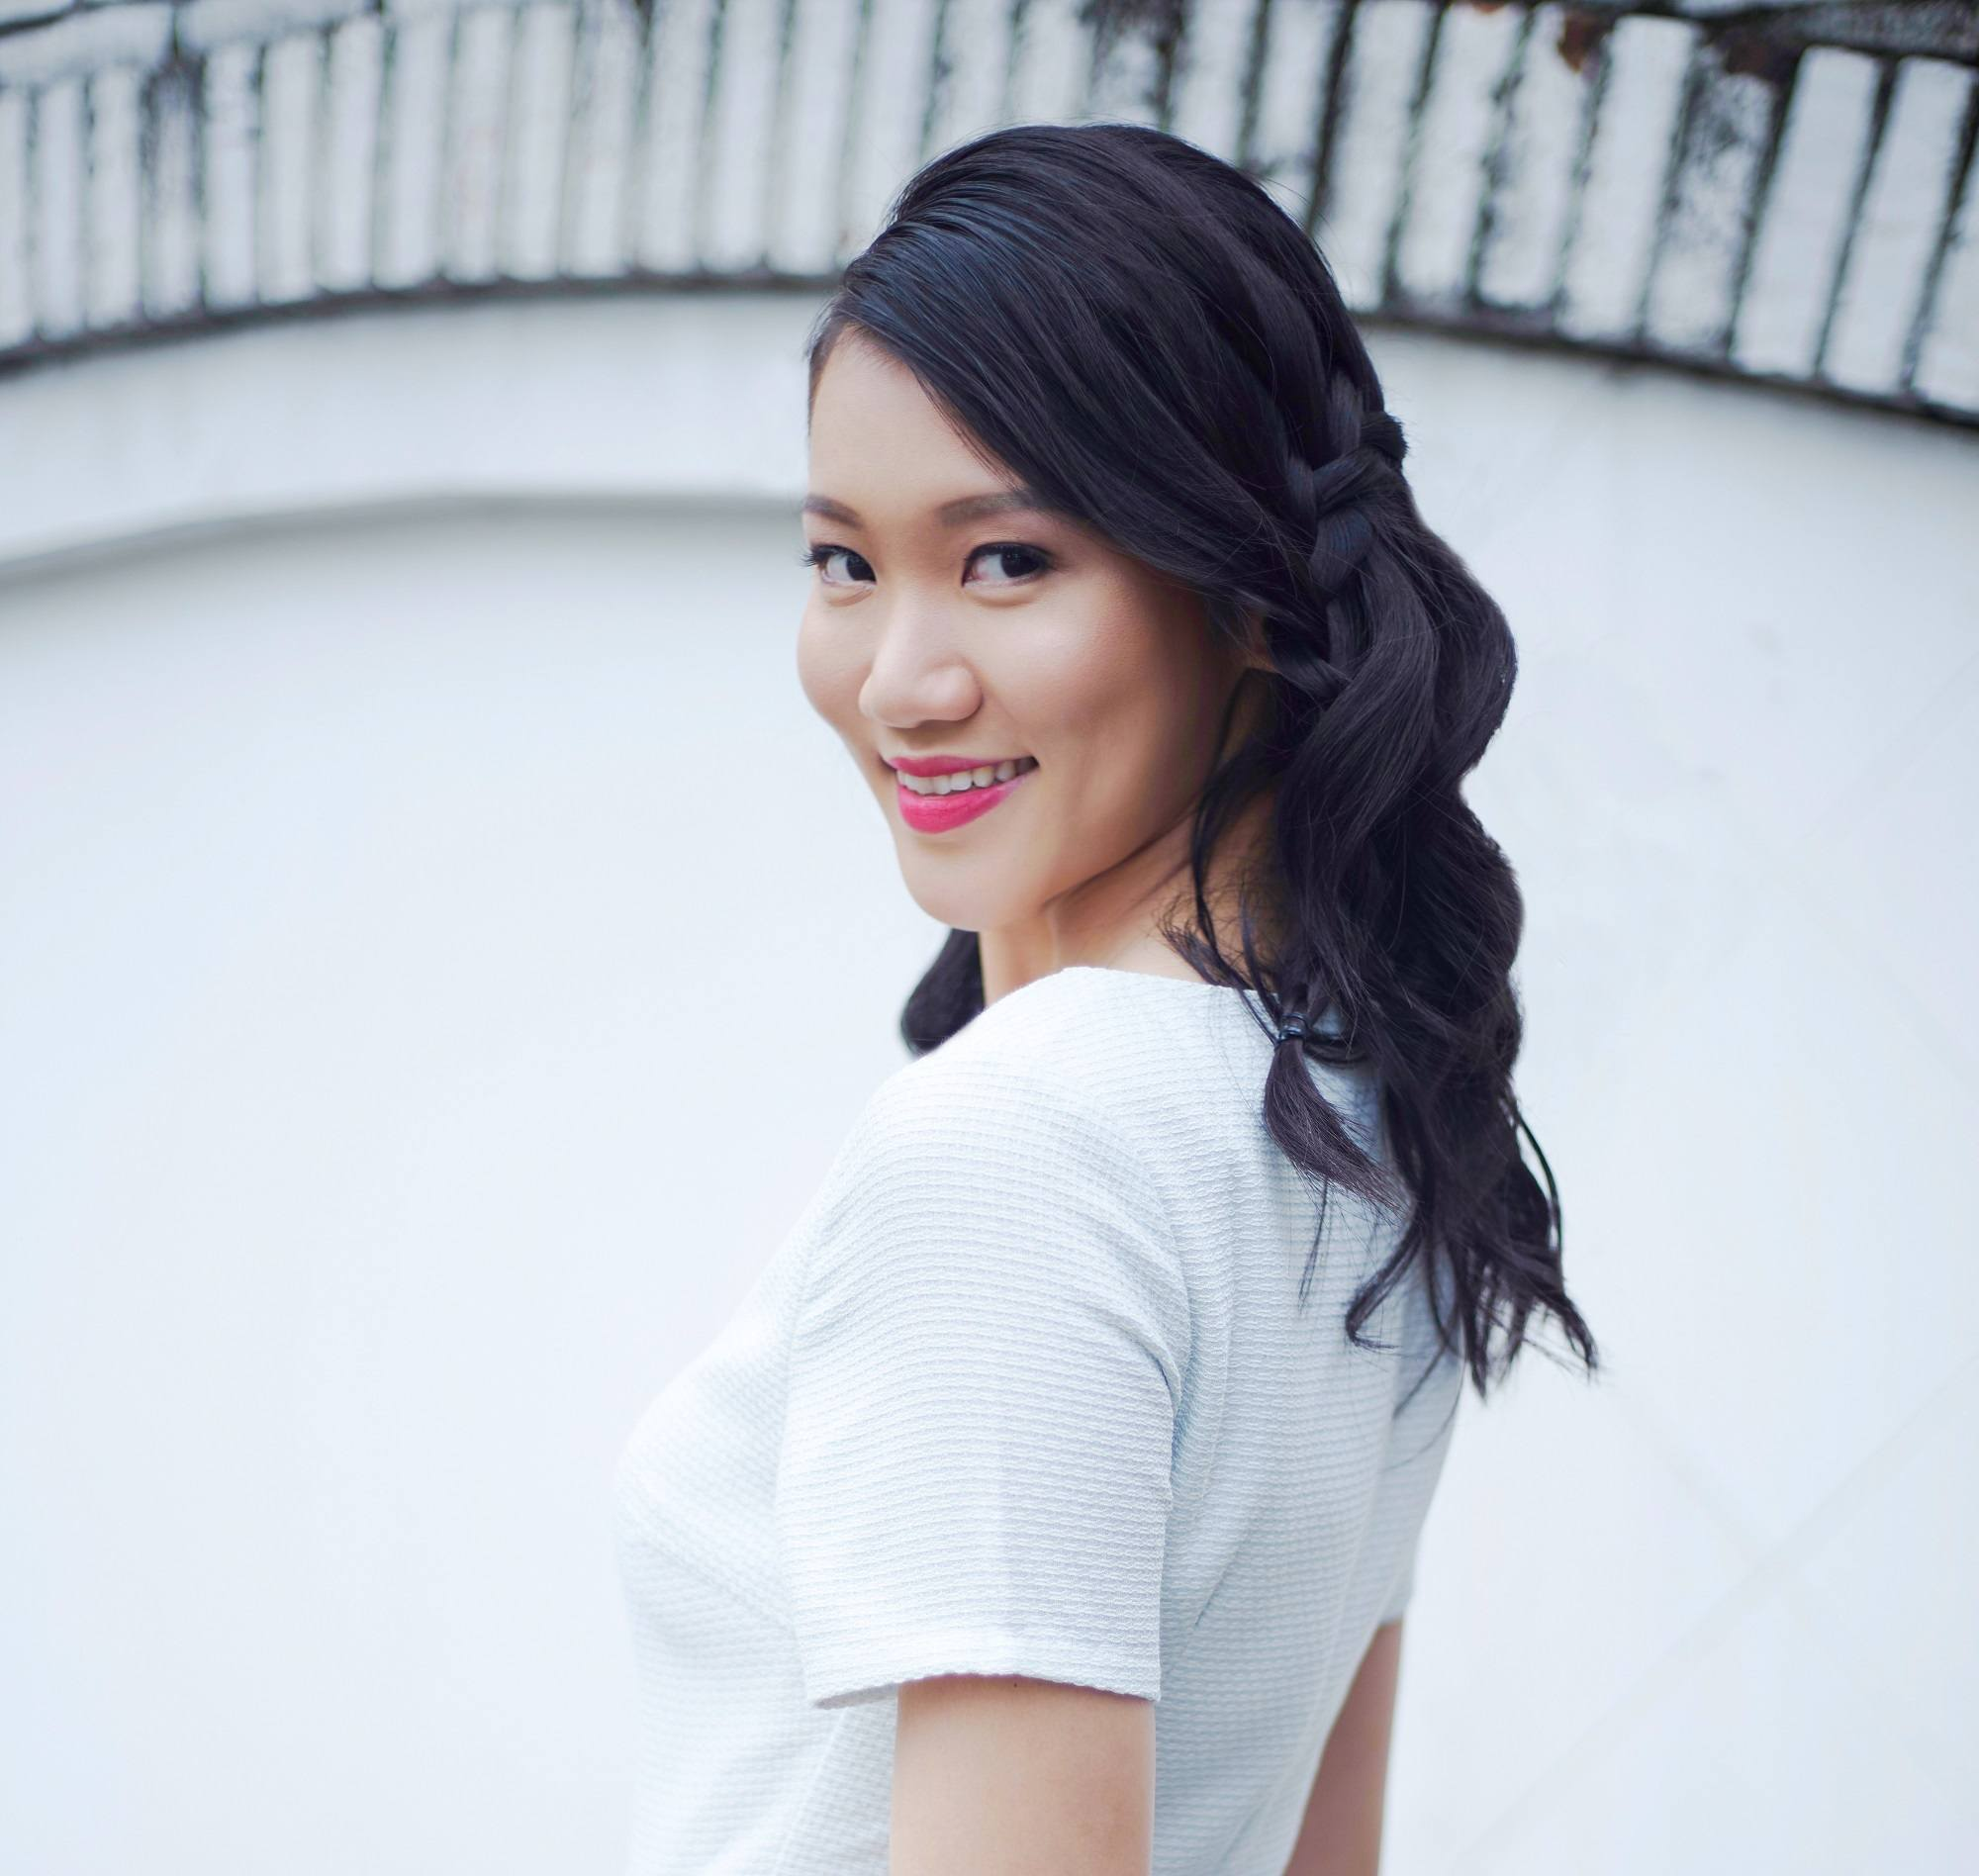 Valentine hairstyles: Closeup shot of an Asian woman with long black hair in waterfall braid wearing a white dress outdoors